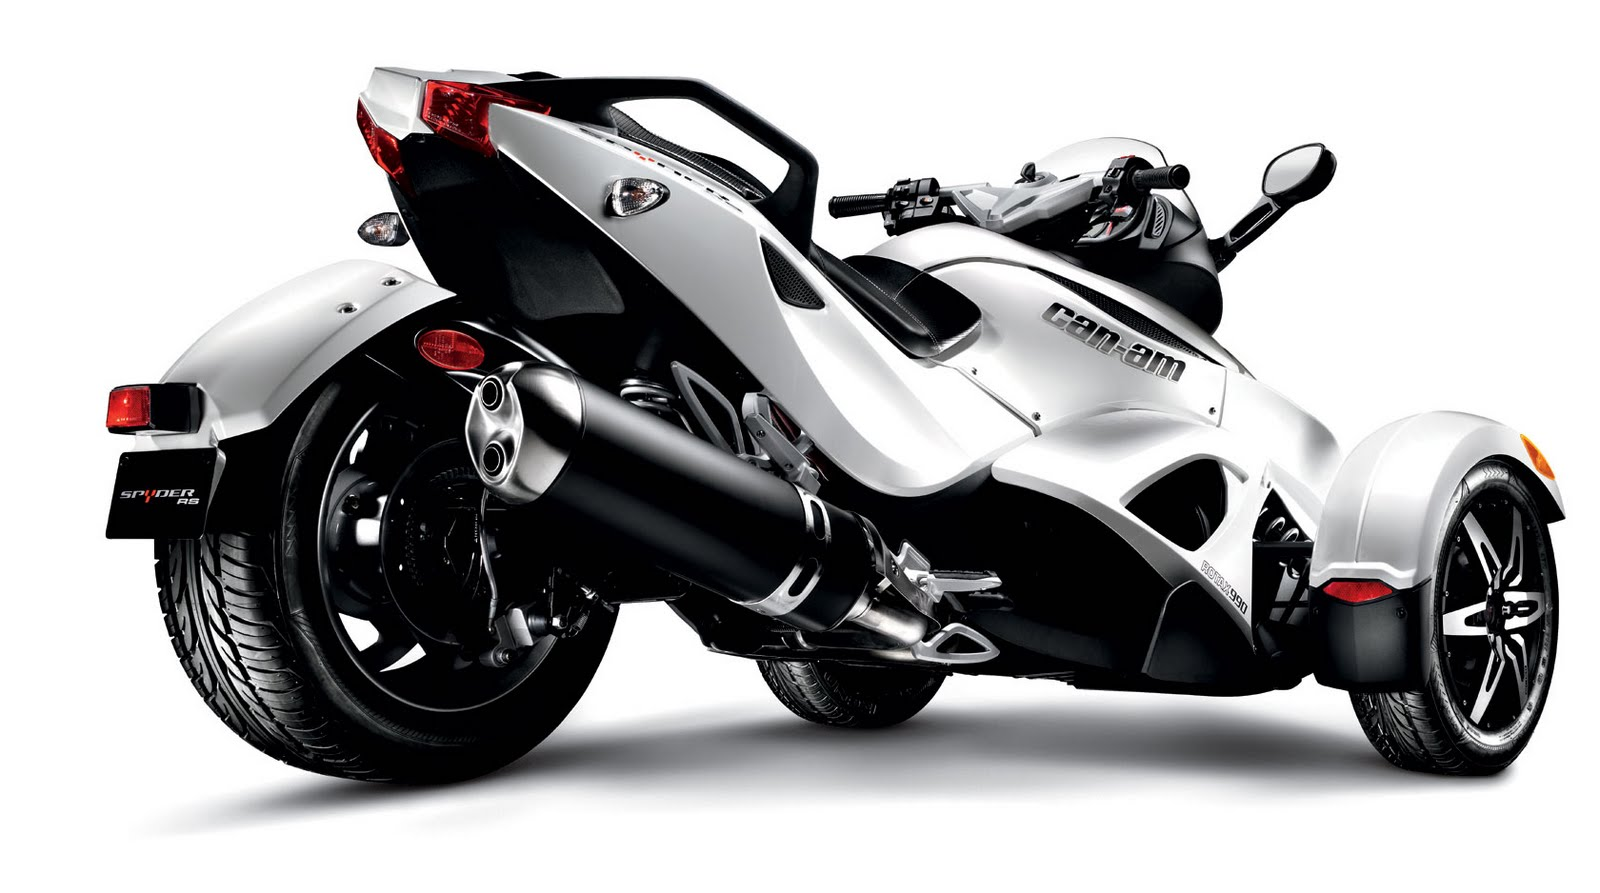 2008 Can-Am Spyder Roadster GS Silver and black